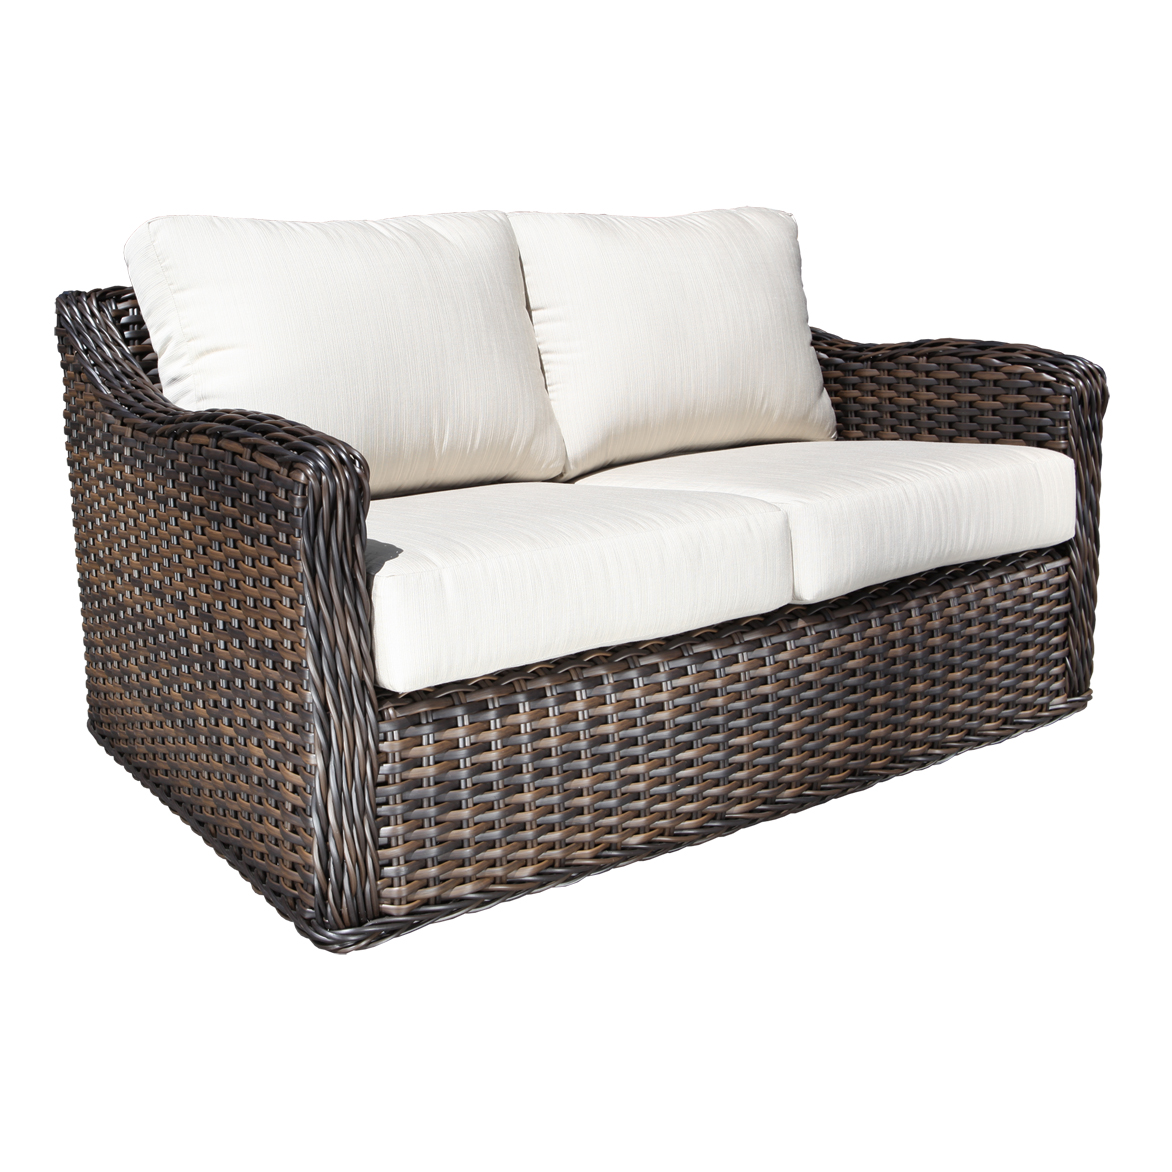 Cool resin wicker patio furniture for all weather hgnv com for Outdoor garden furniture